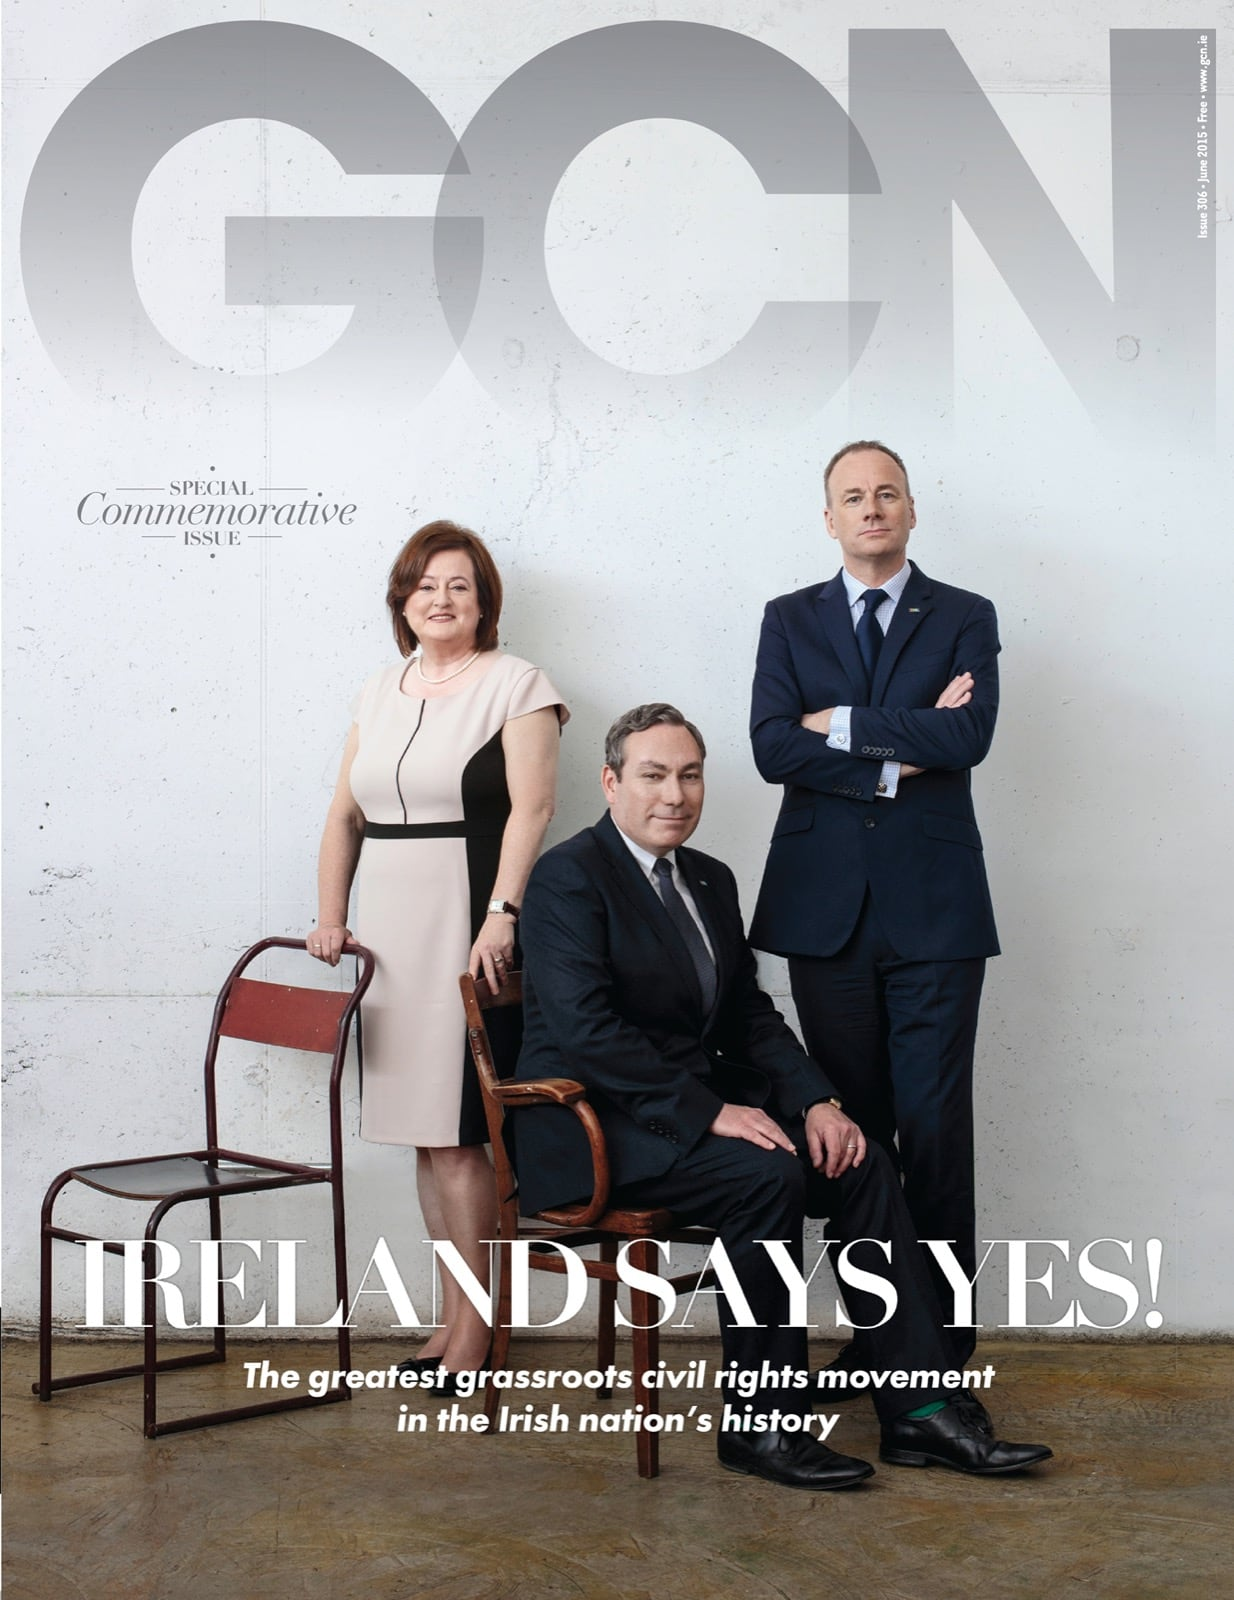 Some of GCN's covers from 2009 with 3 of the marriage equality proponents in formal attire on the cover.